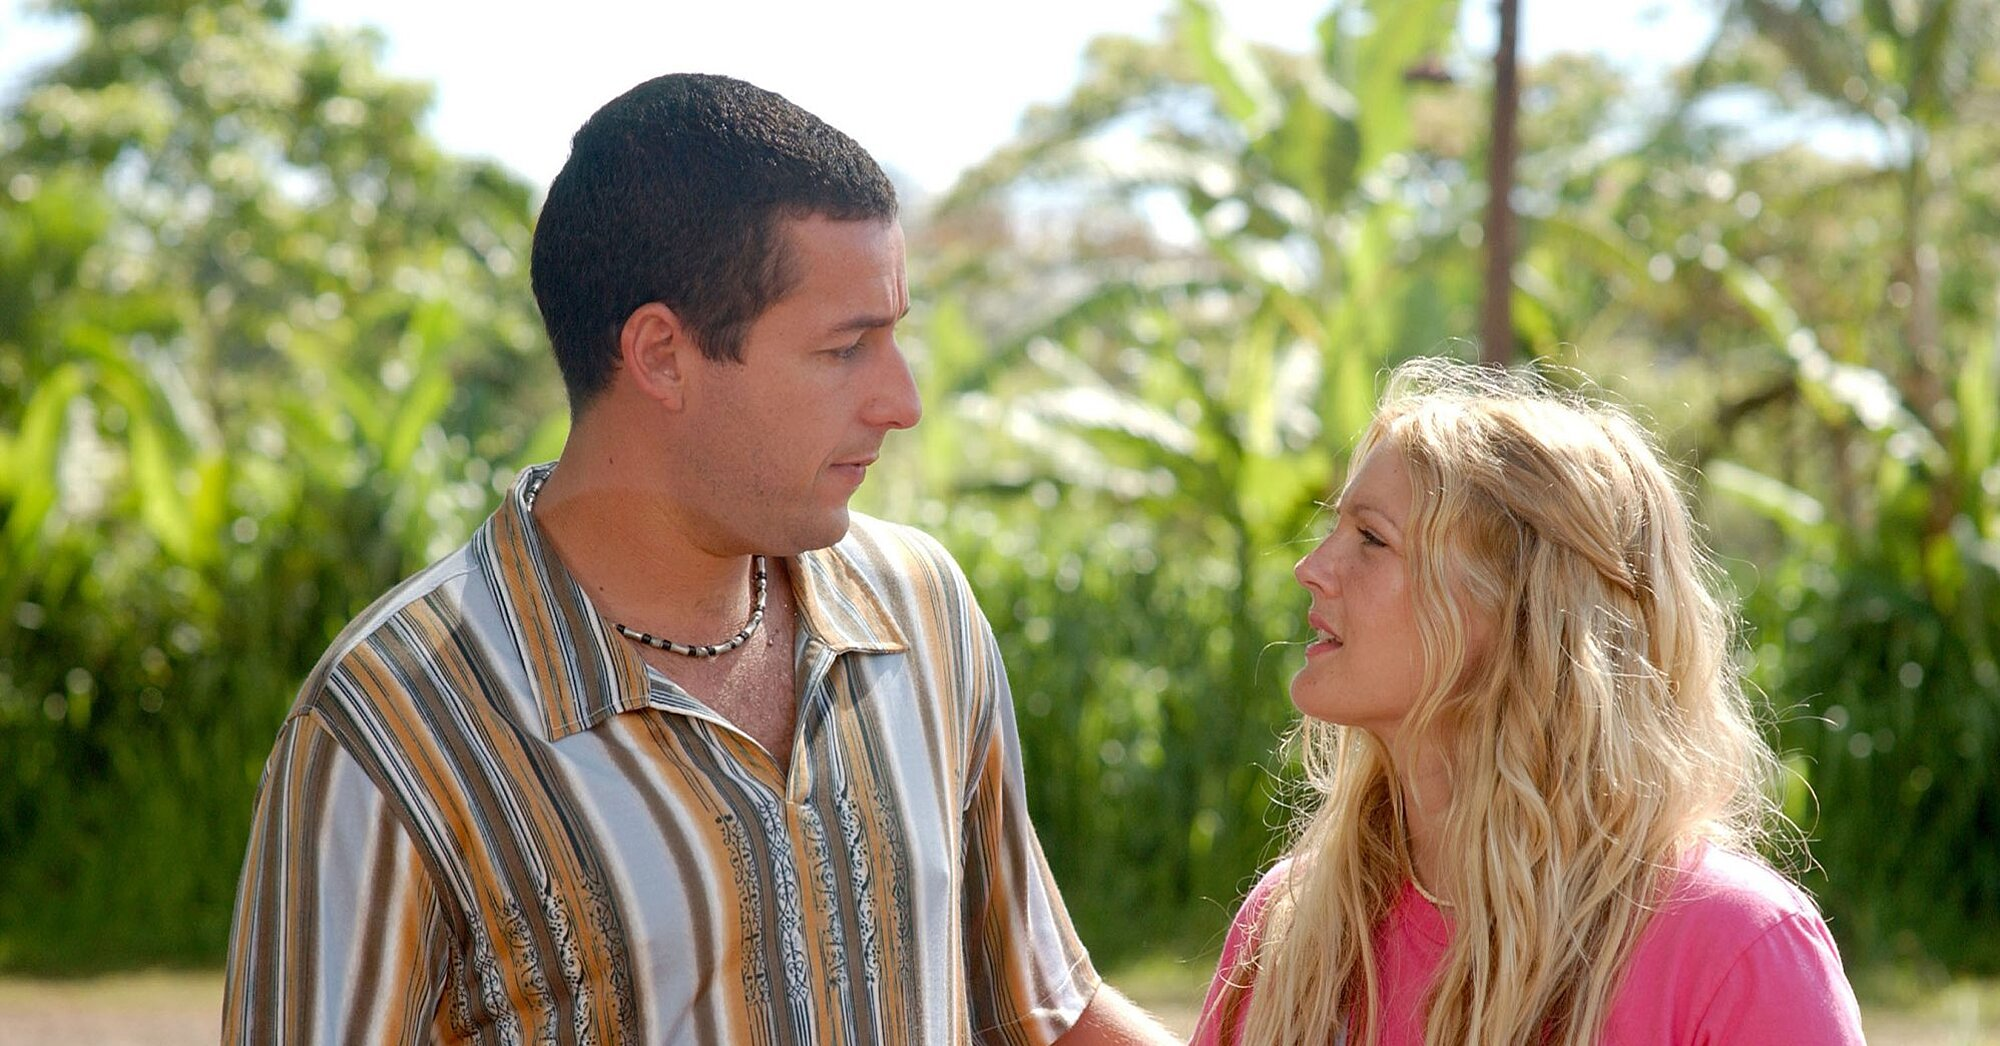 Every adam sandler picture, ranked